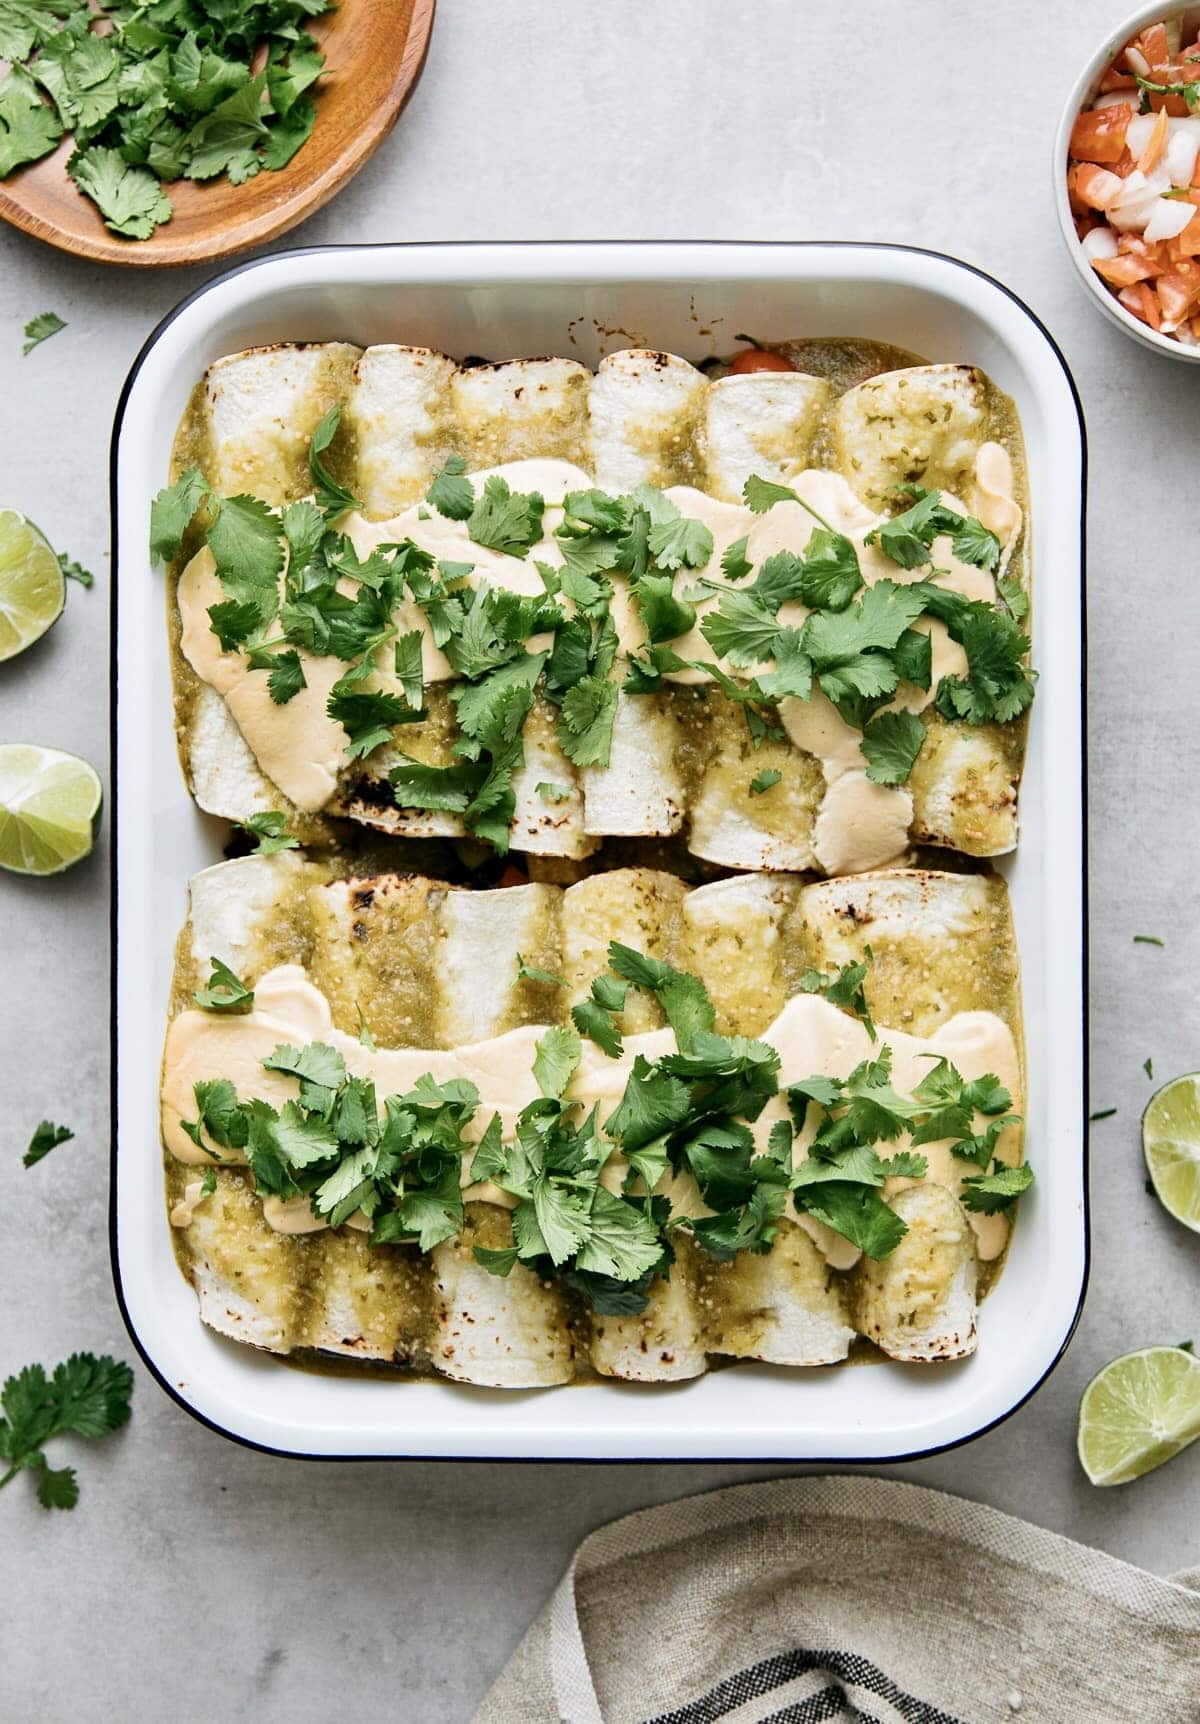 Vegan Enchiladas Verde The Simple Veganista